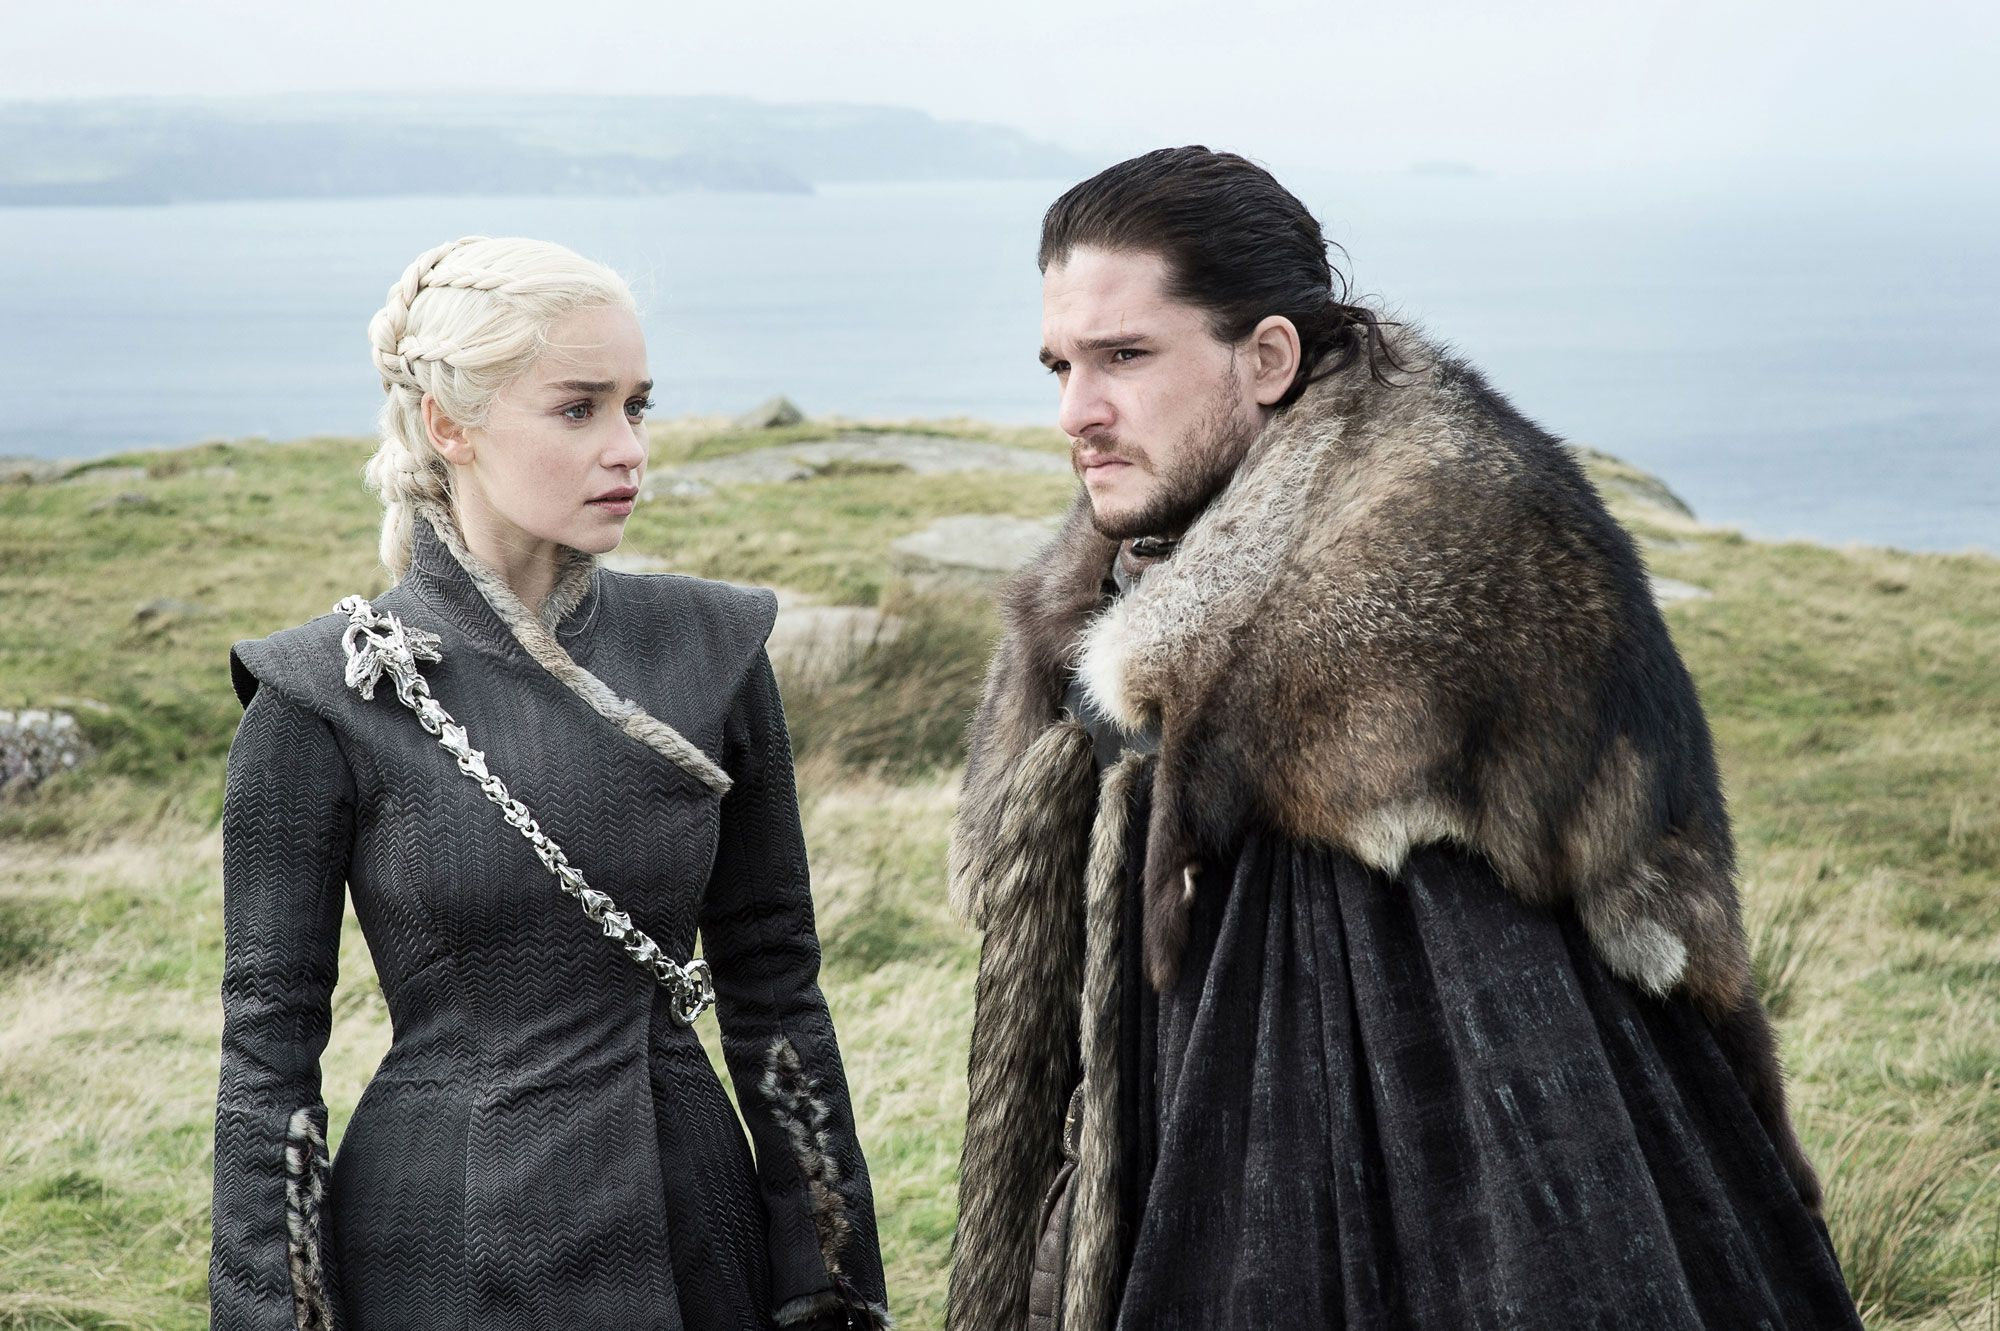 731bca36f7837 Game of Thrones season 8 premiere date